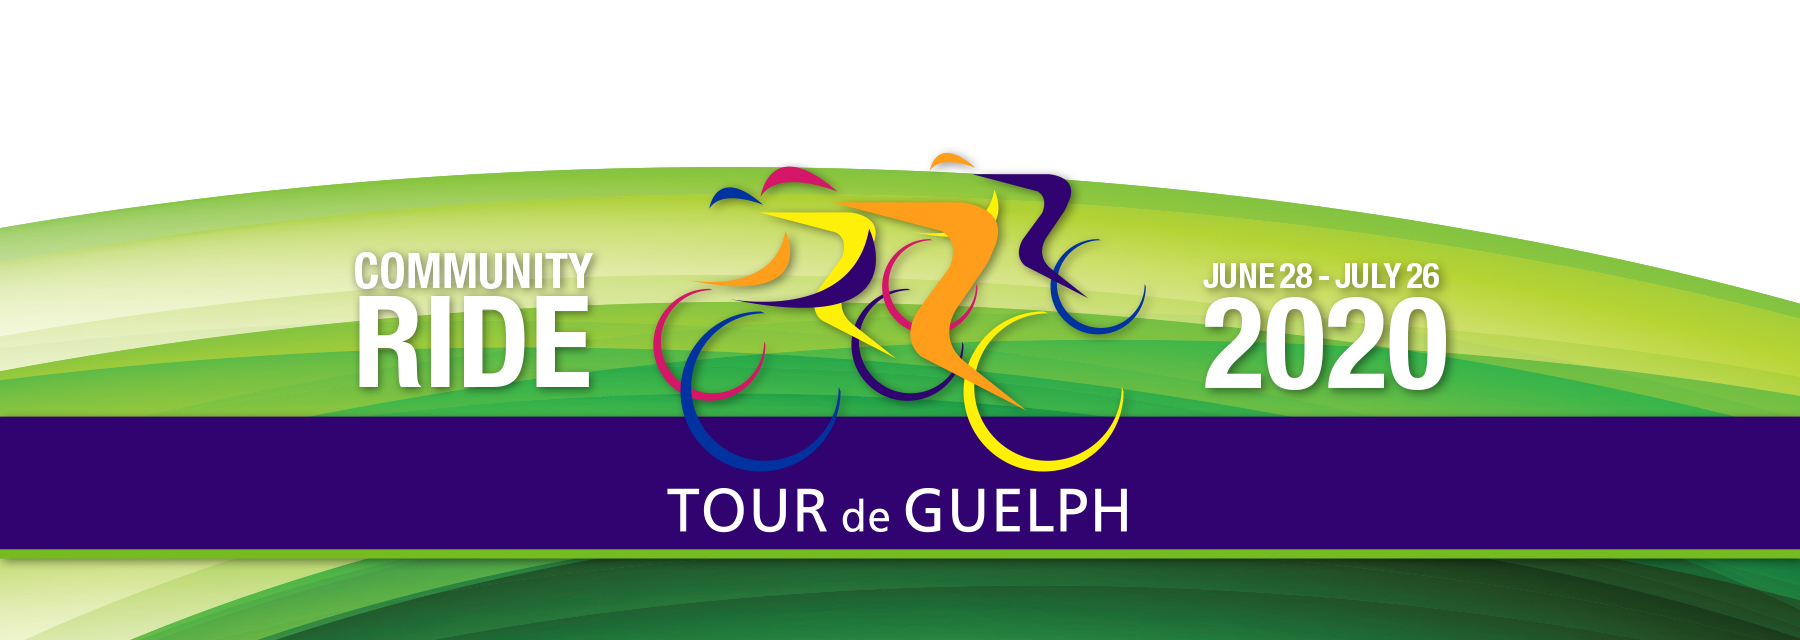 Tour de Guelph June 28 - July 26